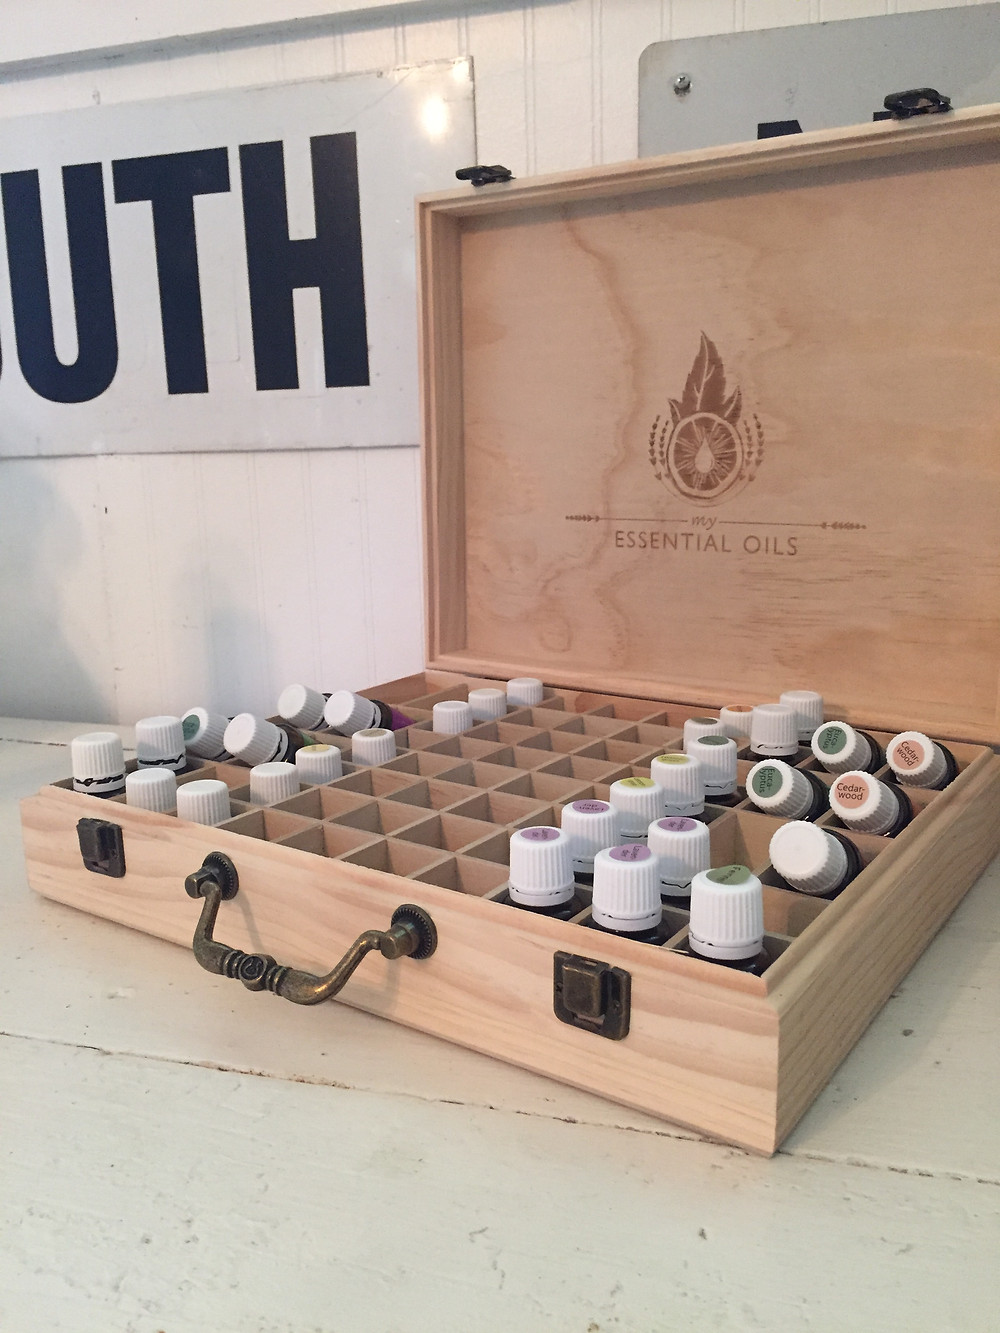 Gadabout Gal Tiffany's home apothecary of Young Living Essential Oils